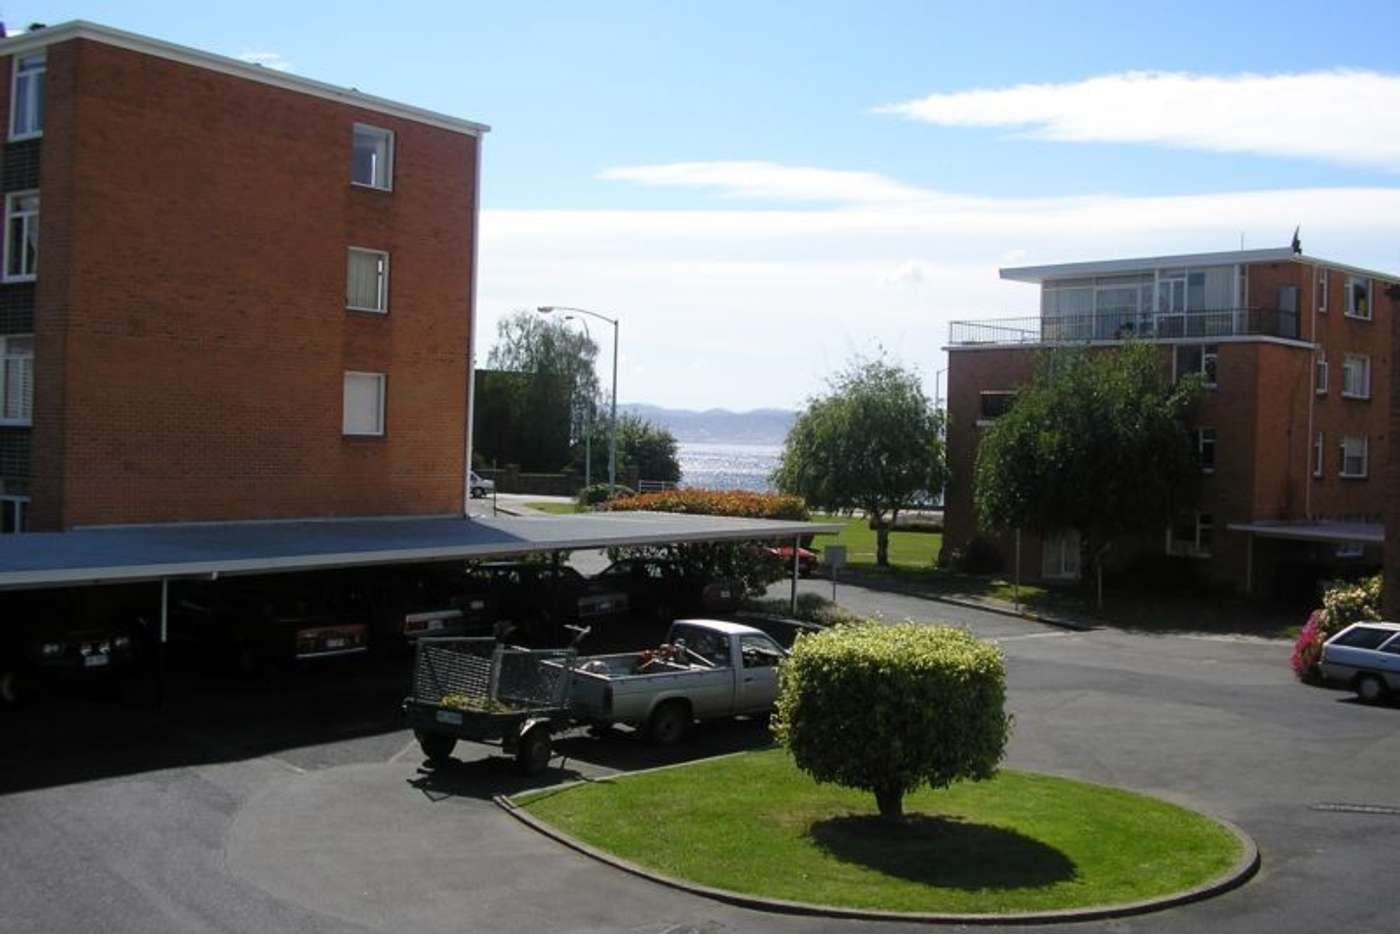 Main view of Homely apartment listing, 12/1 Plimsoll Place, Sandy Bay TAS 7005